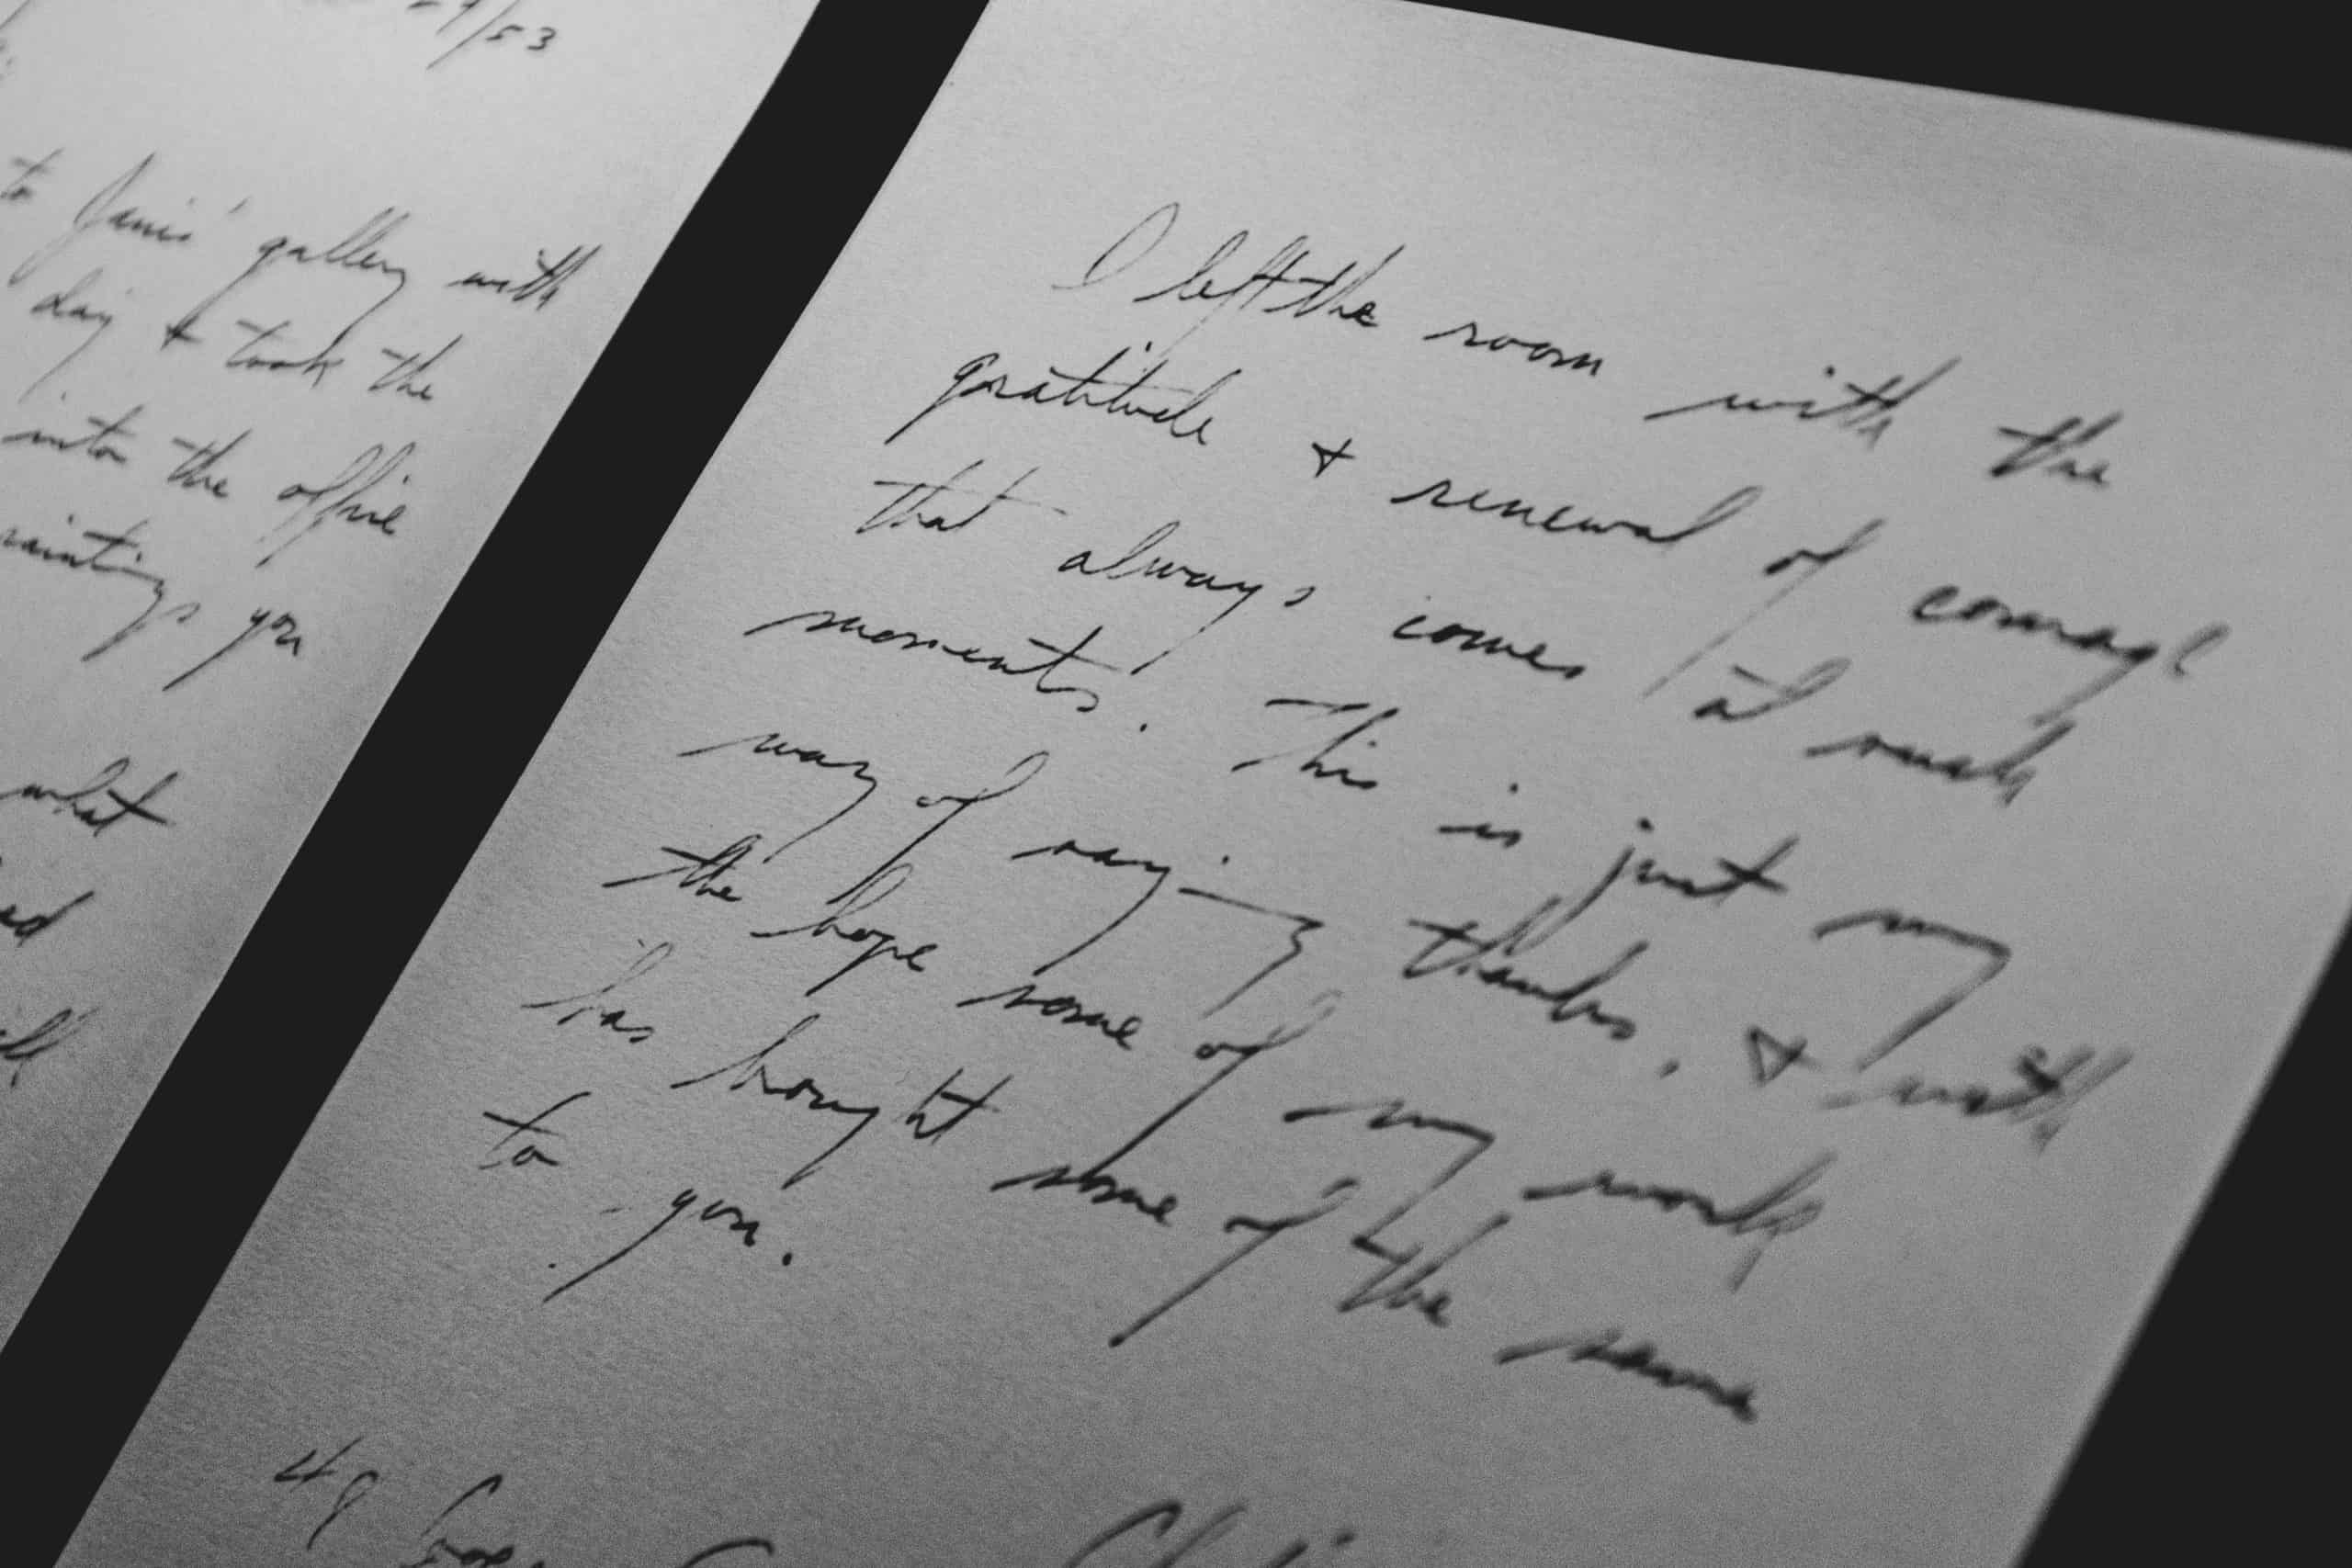 Handwritten text on a journal page